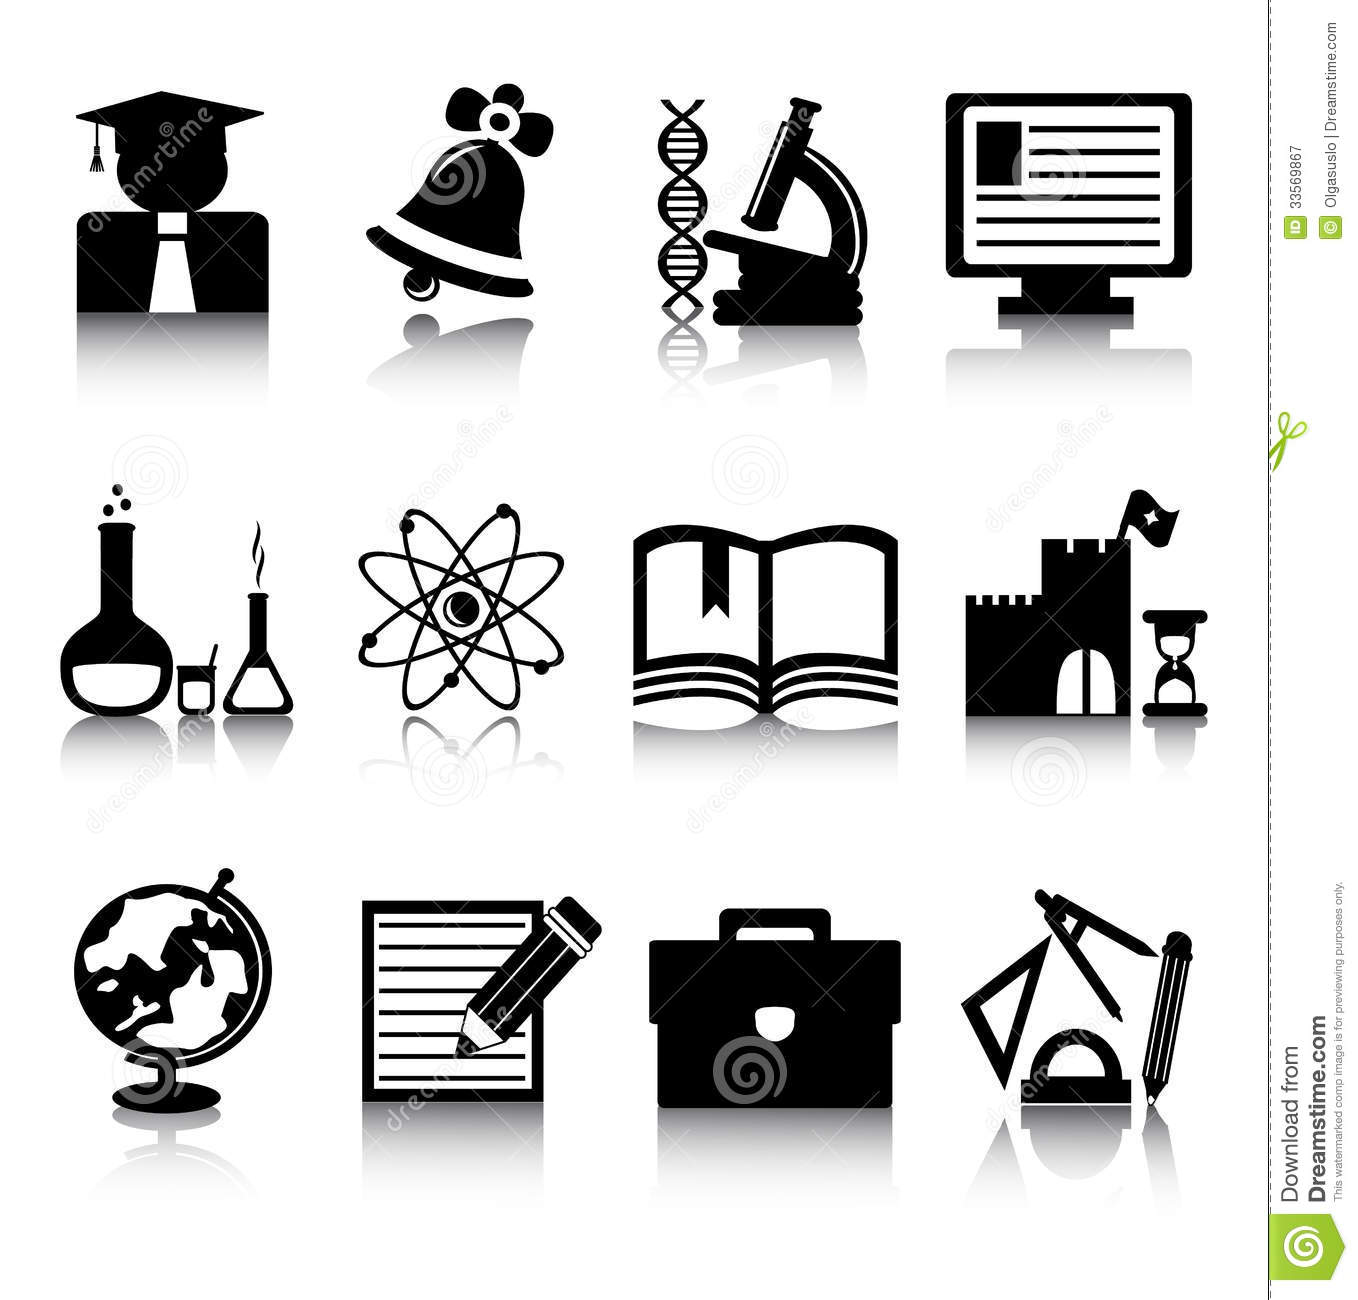 free education clipart black and white - photo #8